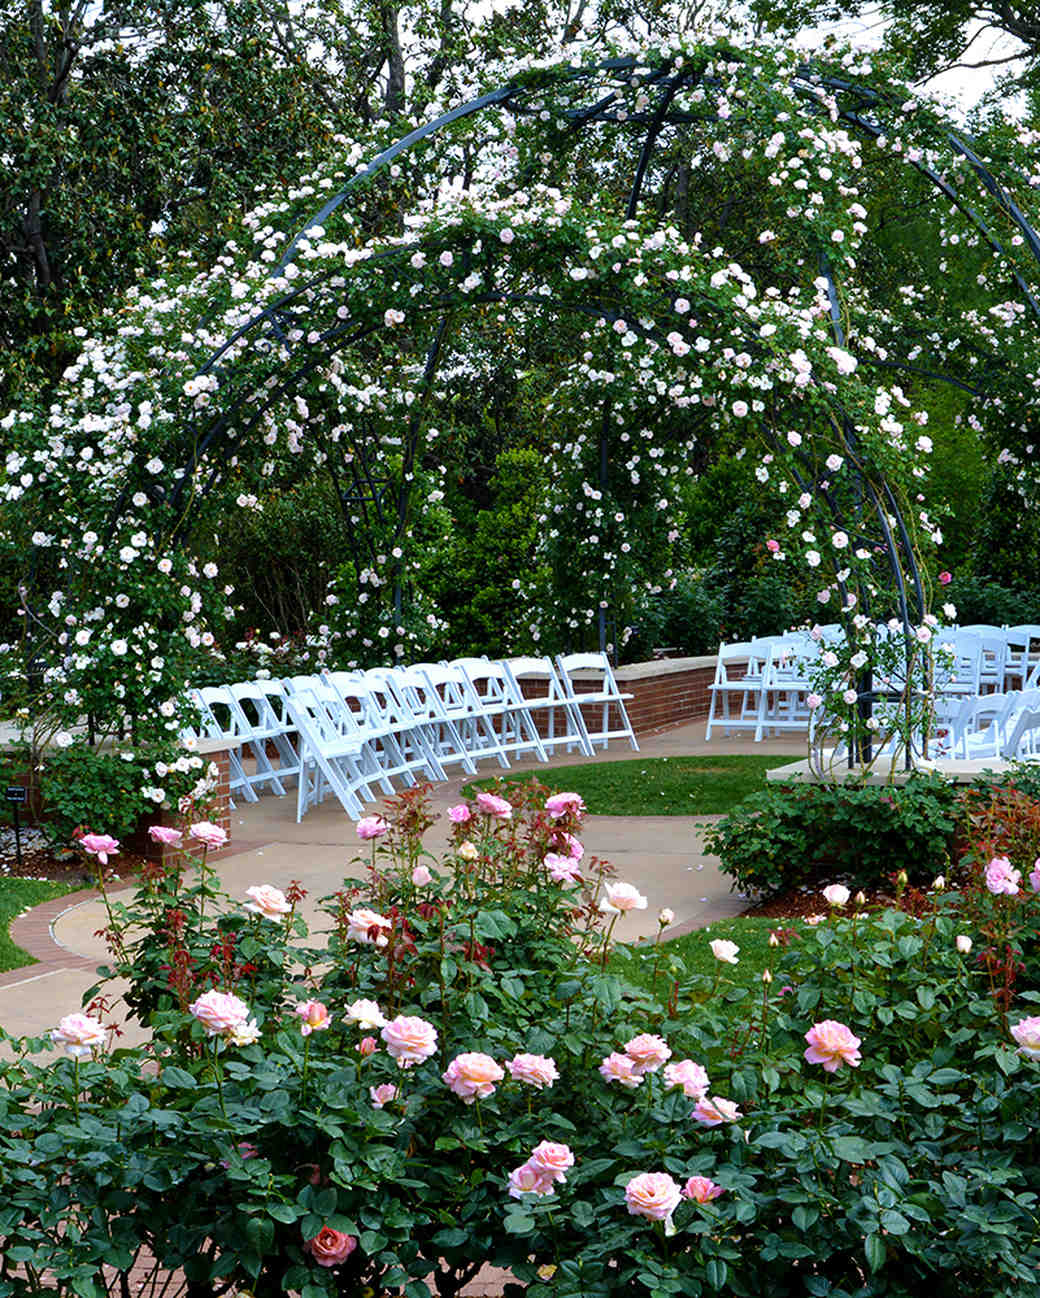 18 beautiful botanical garden wedding venues martha stewart weddings. Black Bedroom Furniture Sets. Home Design Ideas